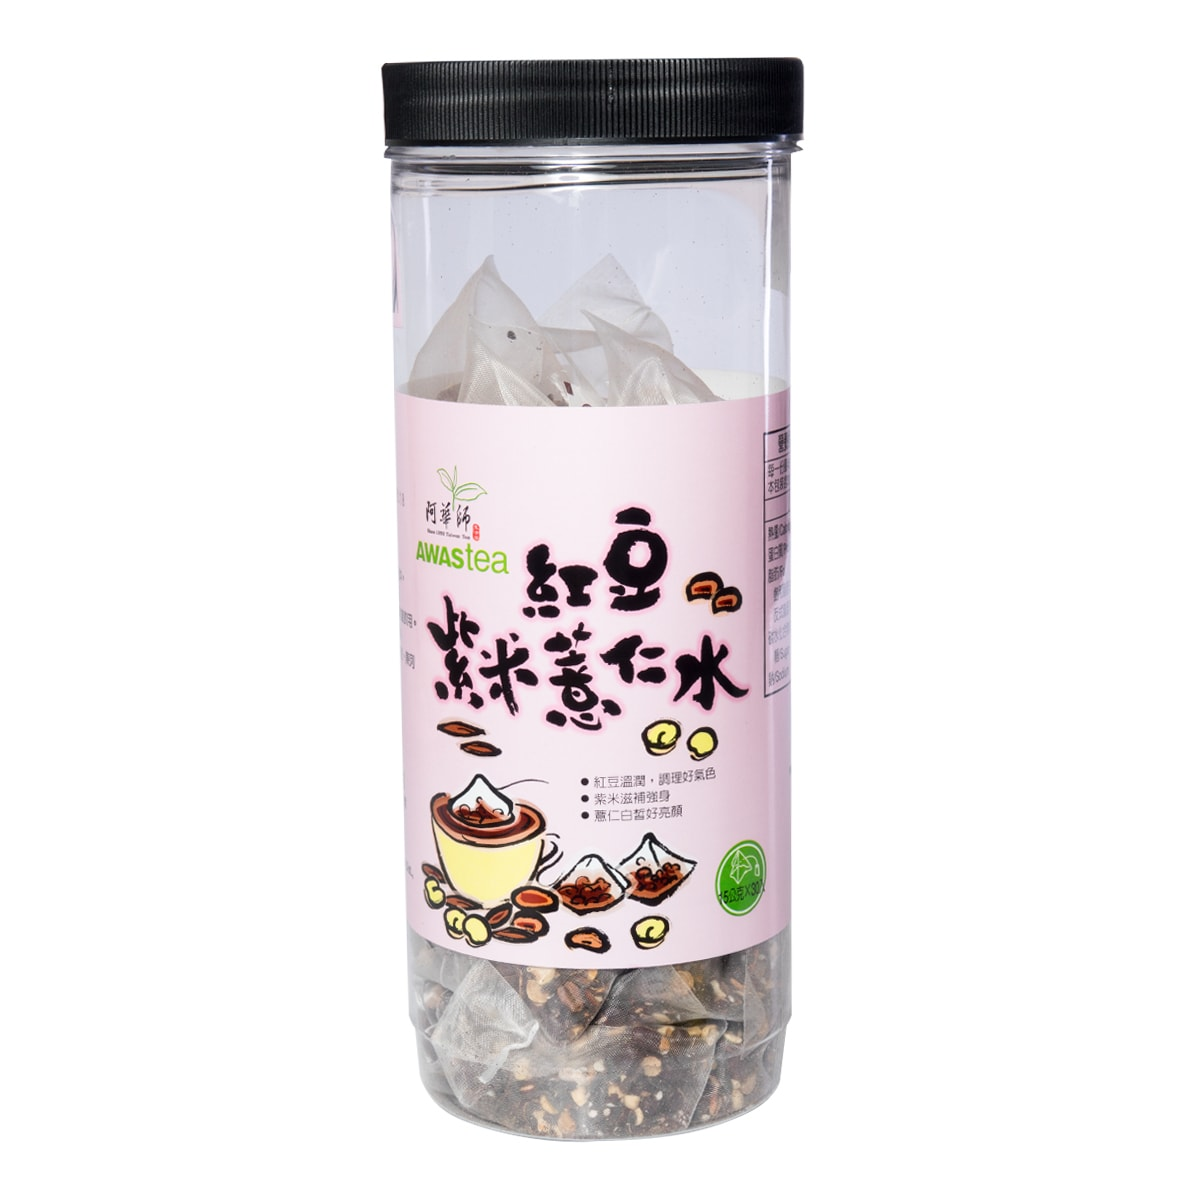 Yamibuy.com:Customer reviews:AWASTEA Ed Bean Purple Rice Barley Tea 15g x 30 bags